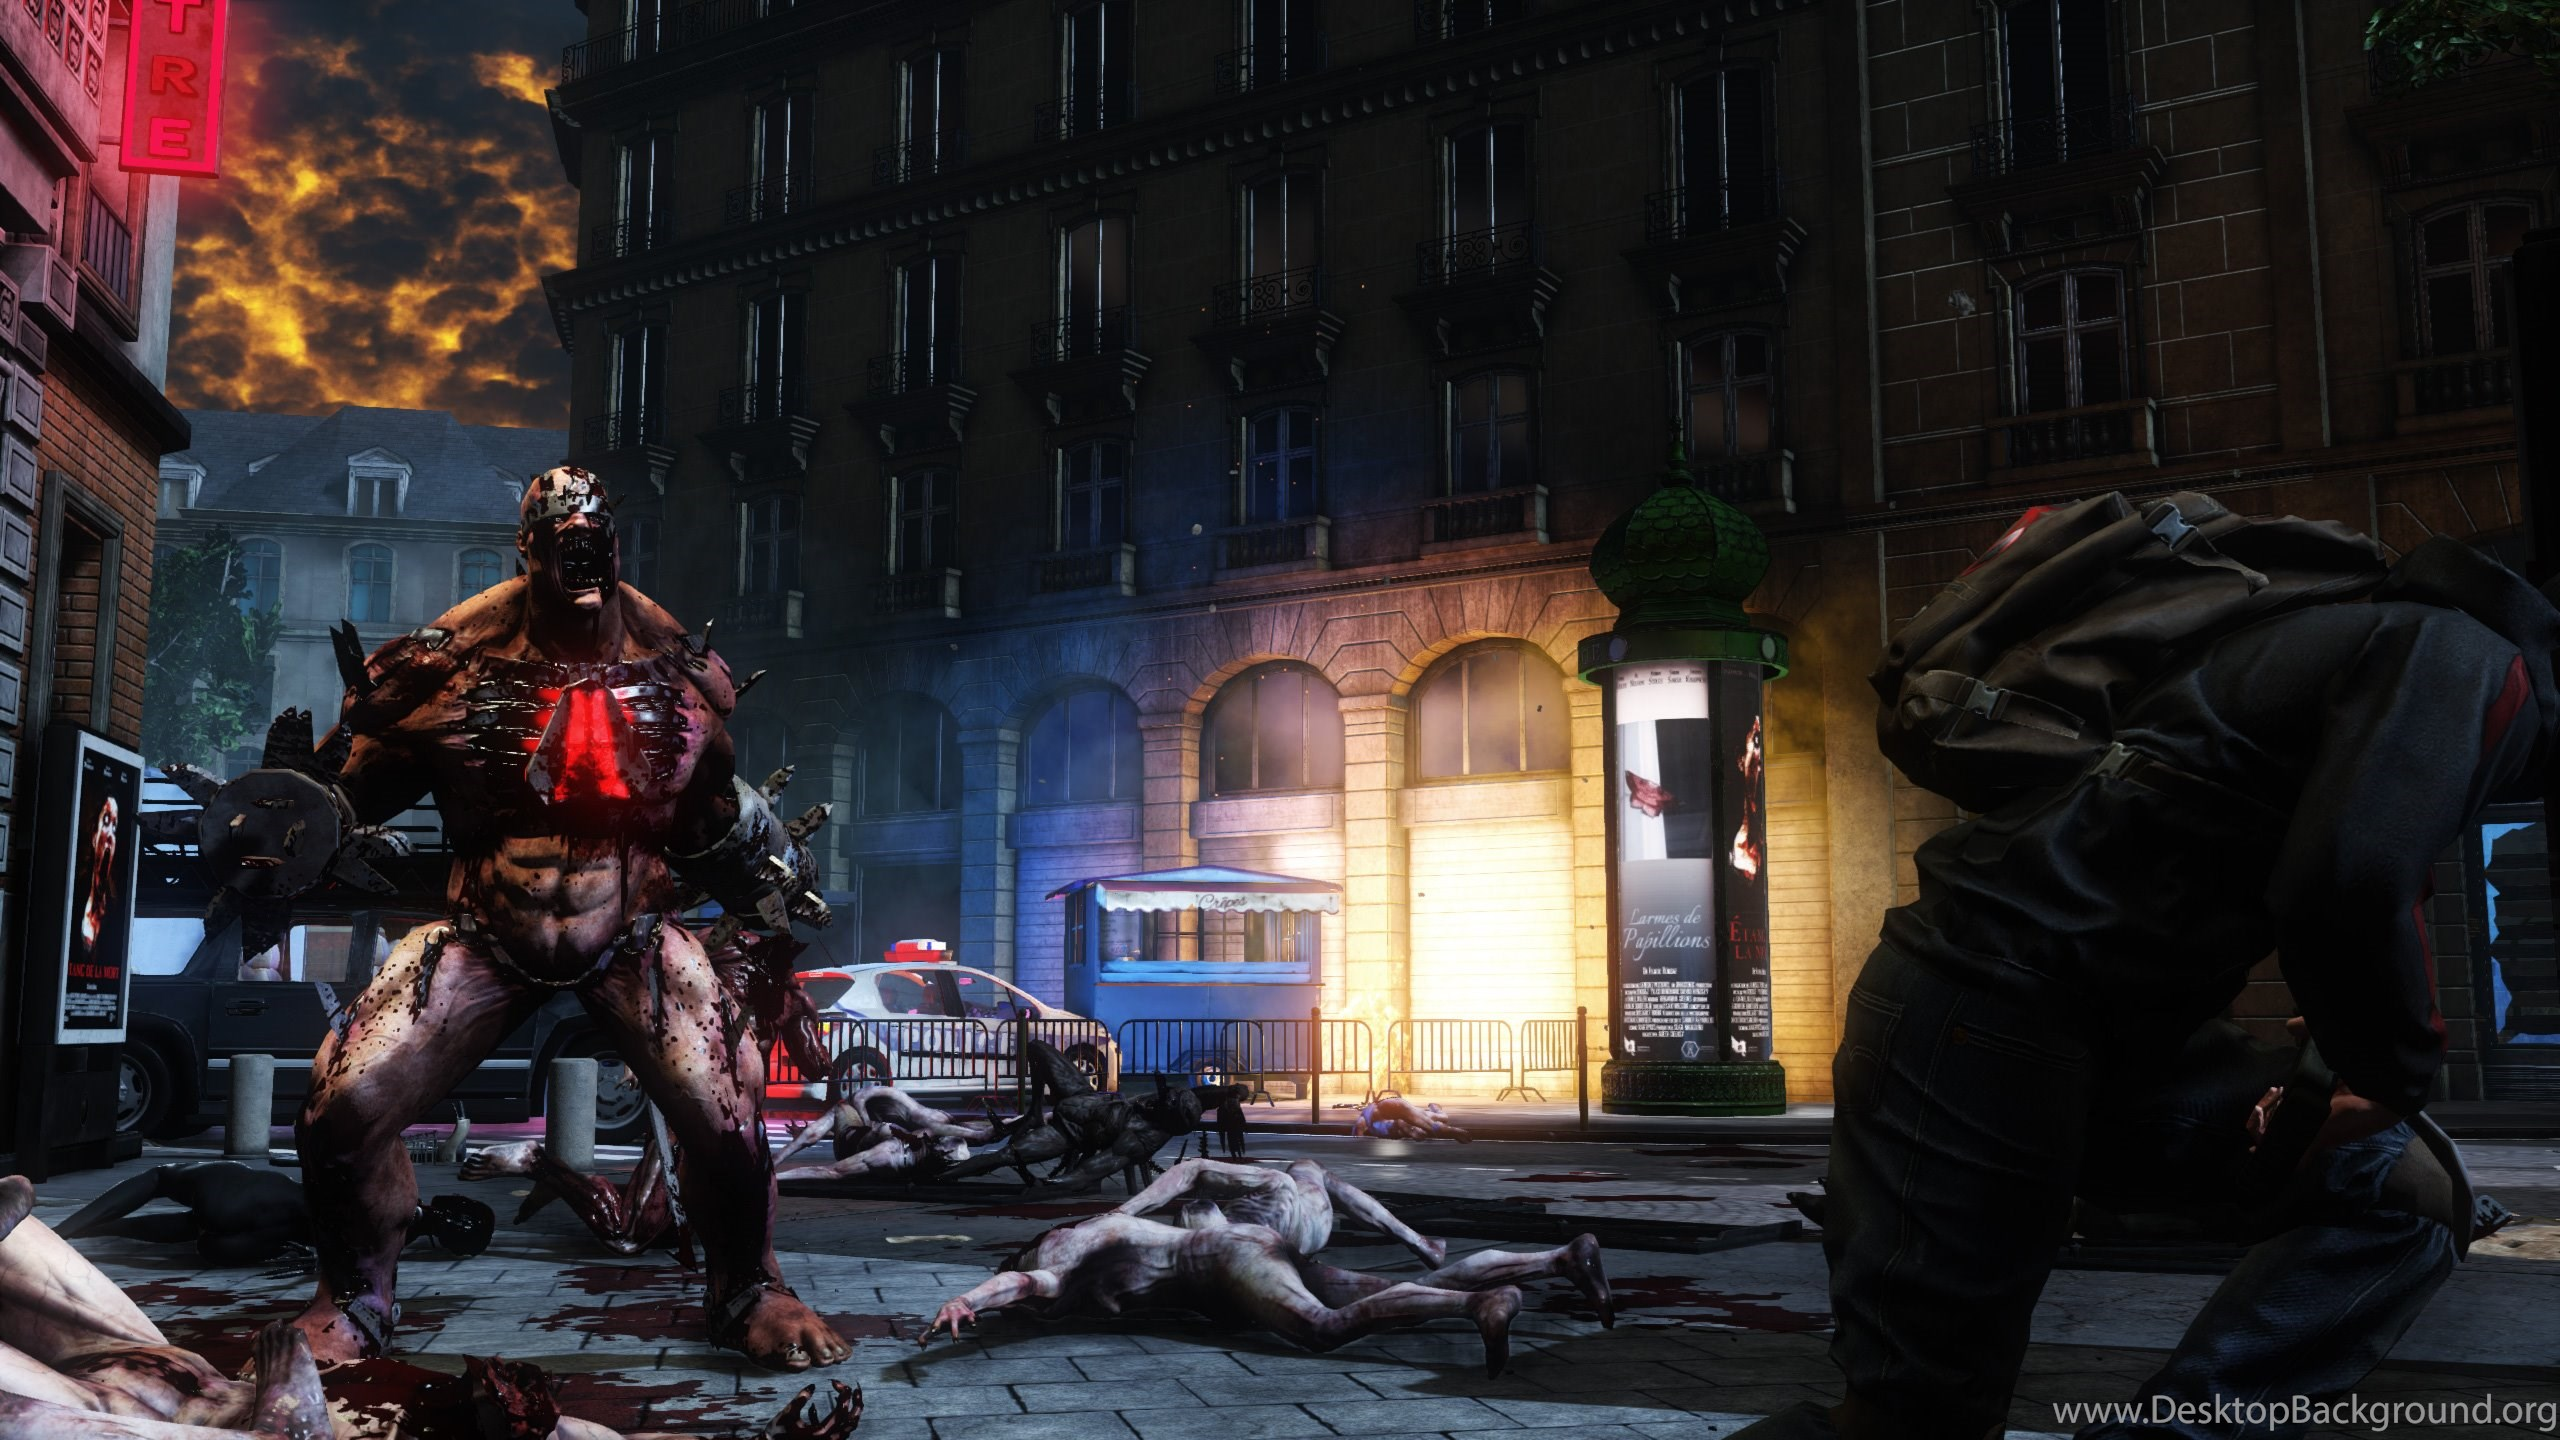 17 Killing Floor 2 Hd Wallpapers Desktop Background